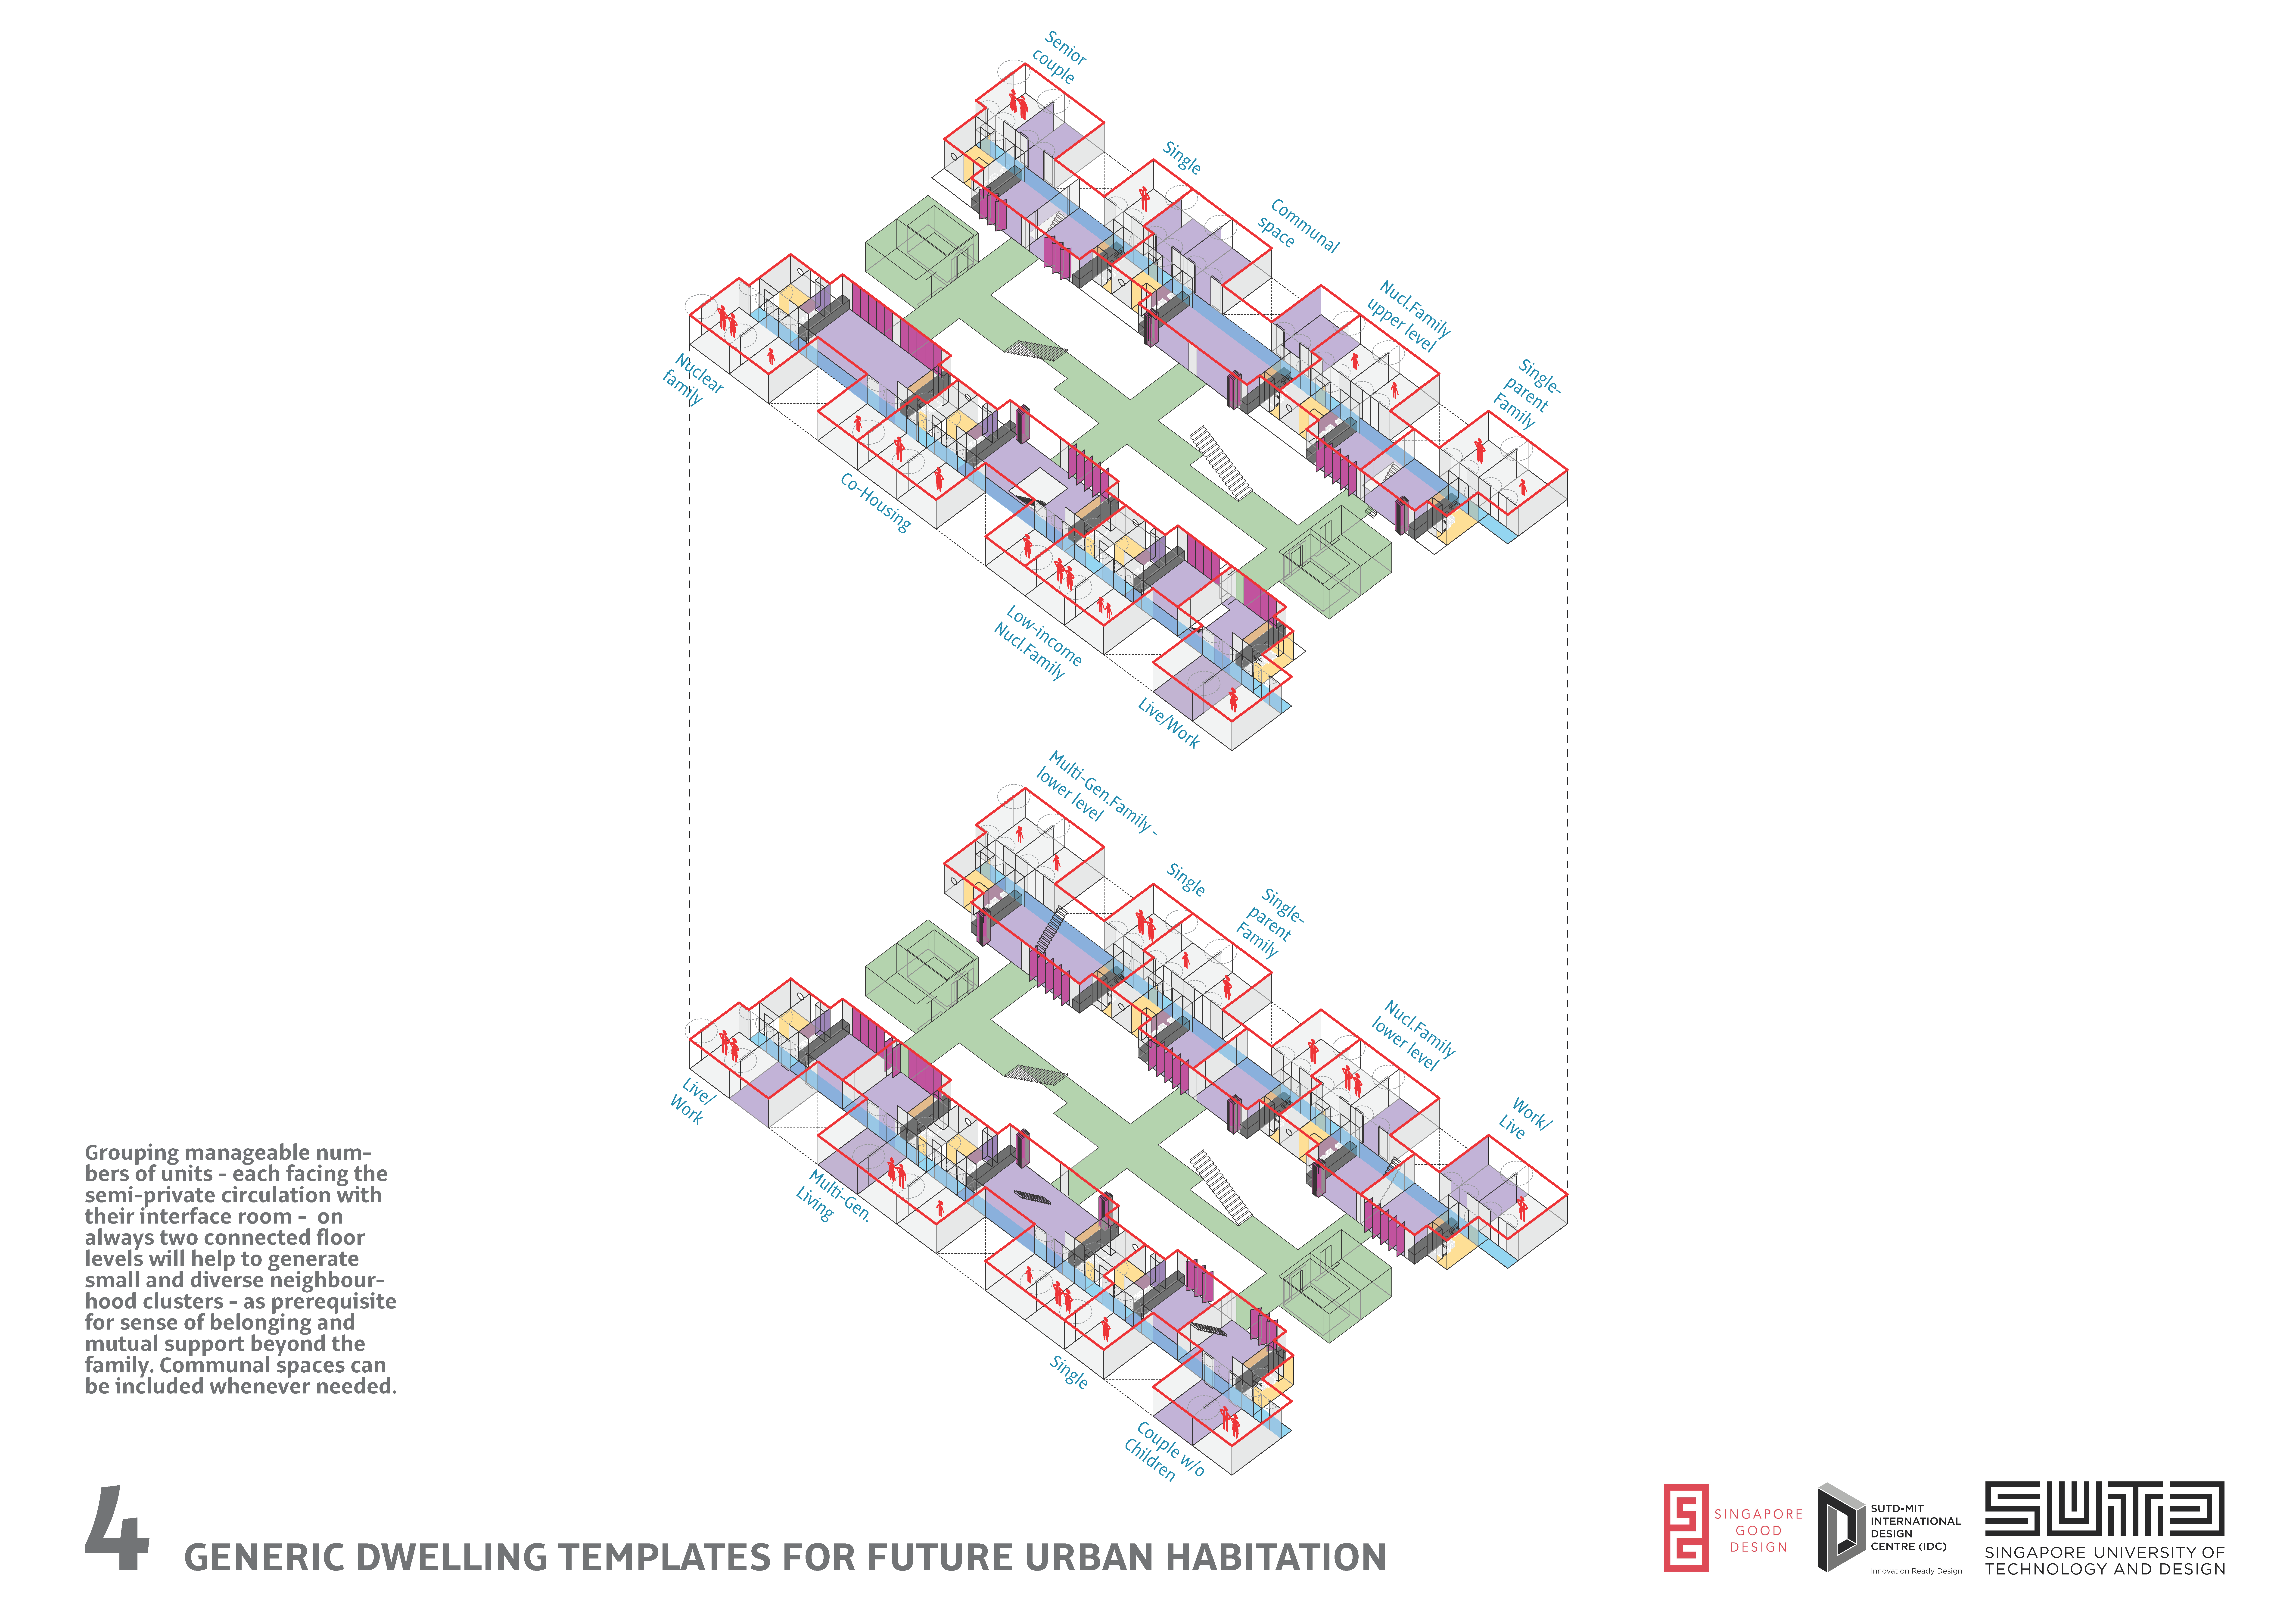 Generic Dwelling Templates for Future Urban Habitation